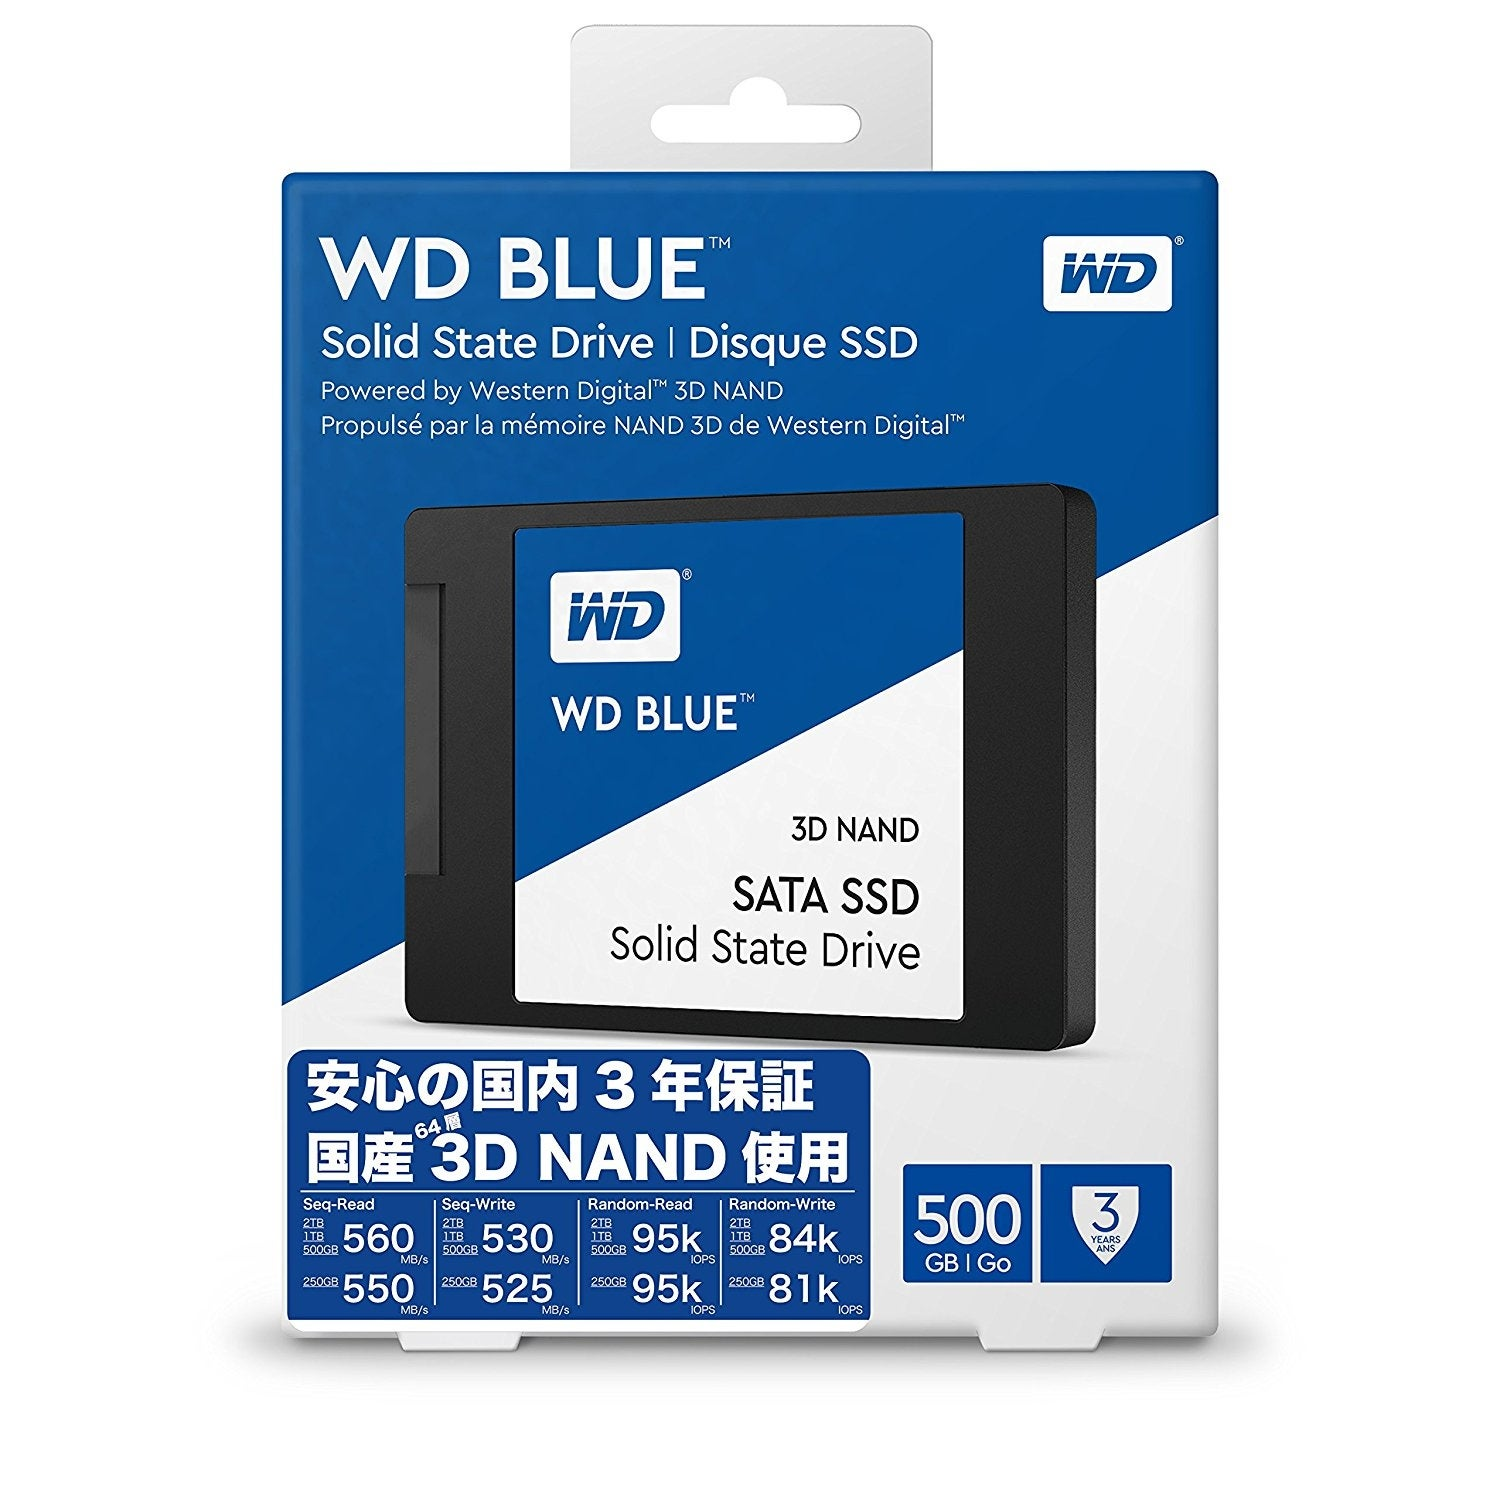 Shop Wd Blue 3d Nand 500gb Pc Ssd Sata Iii 6 Gb S 25 7mm Solid Hardisk Internal State Drive Wds500g2b0a Free Shipping Today 19579598